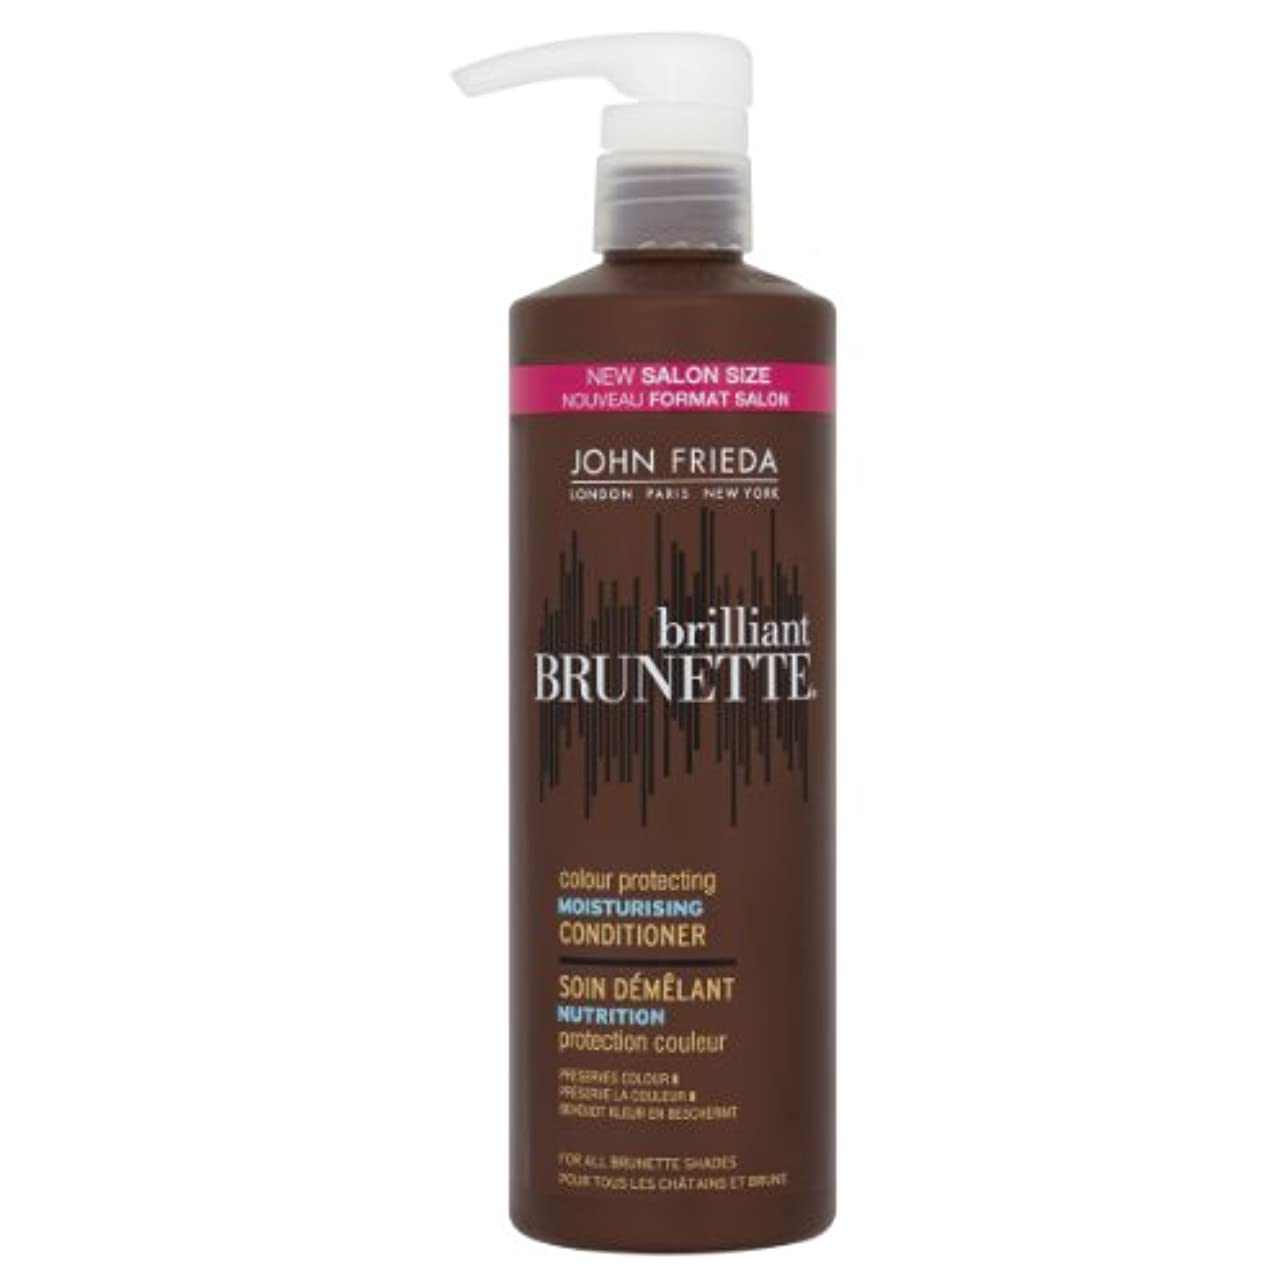 ハーブボトル熟達したJohn Frieda Brilliant Brunette Colour Protecting Moisturising Conditioner 500ml